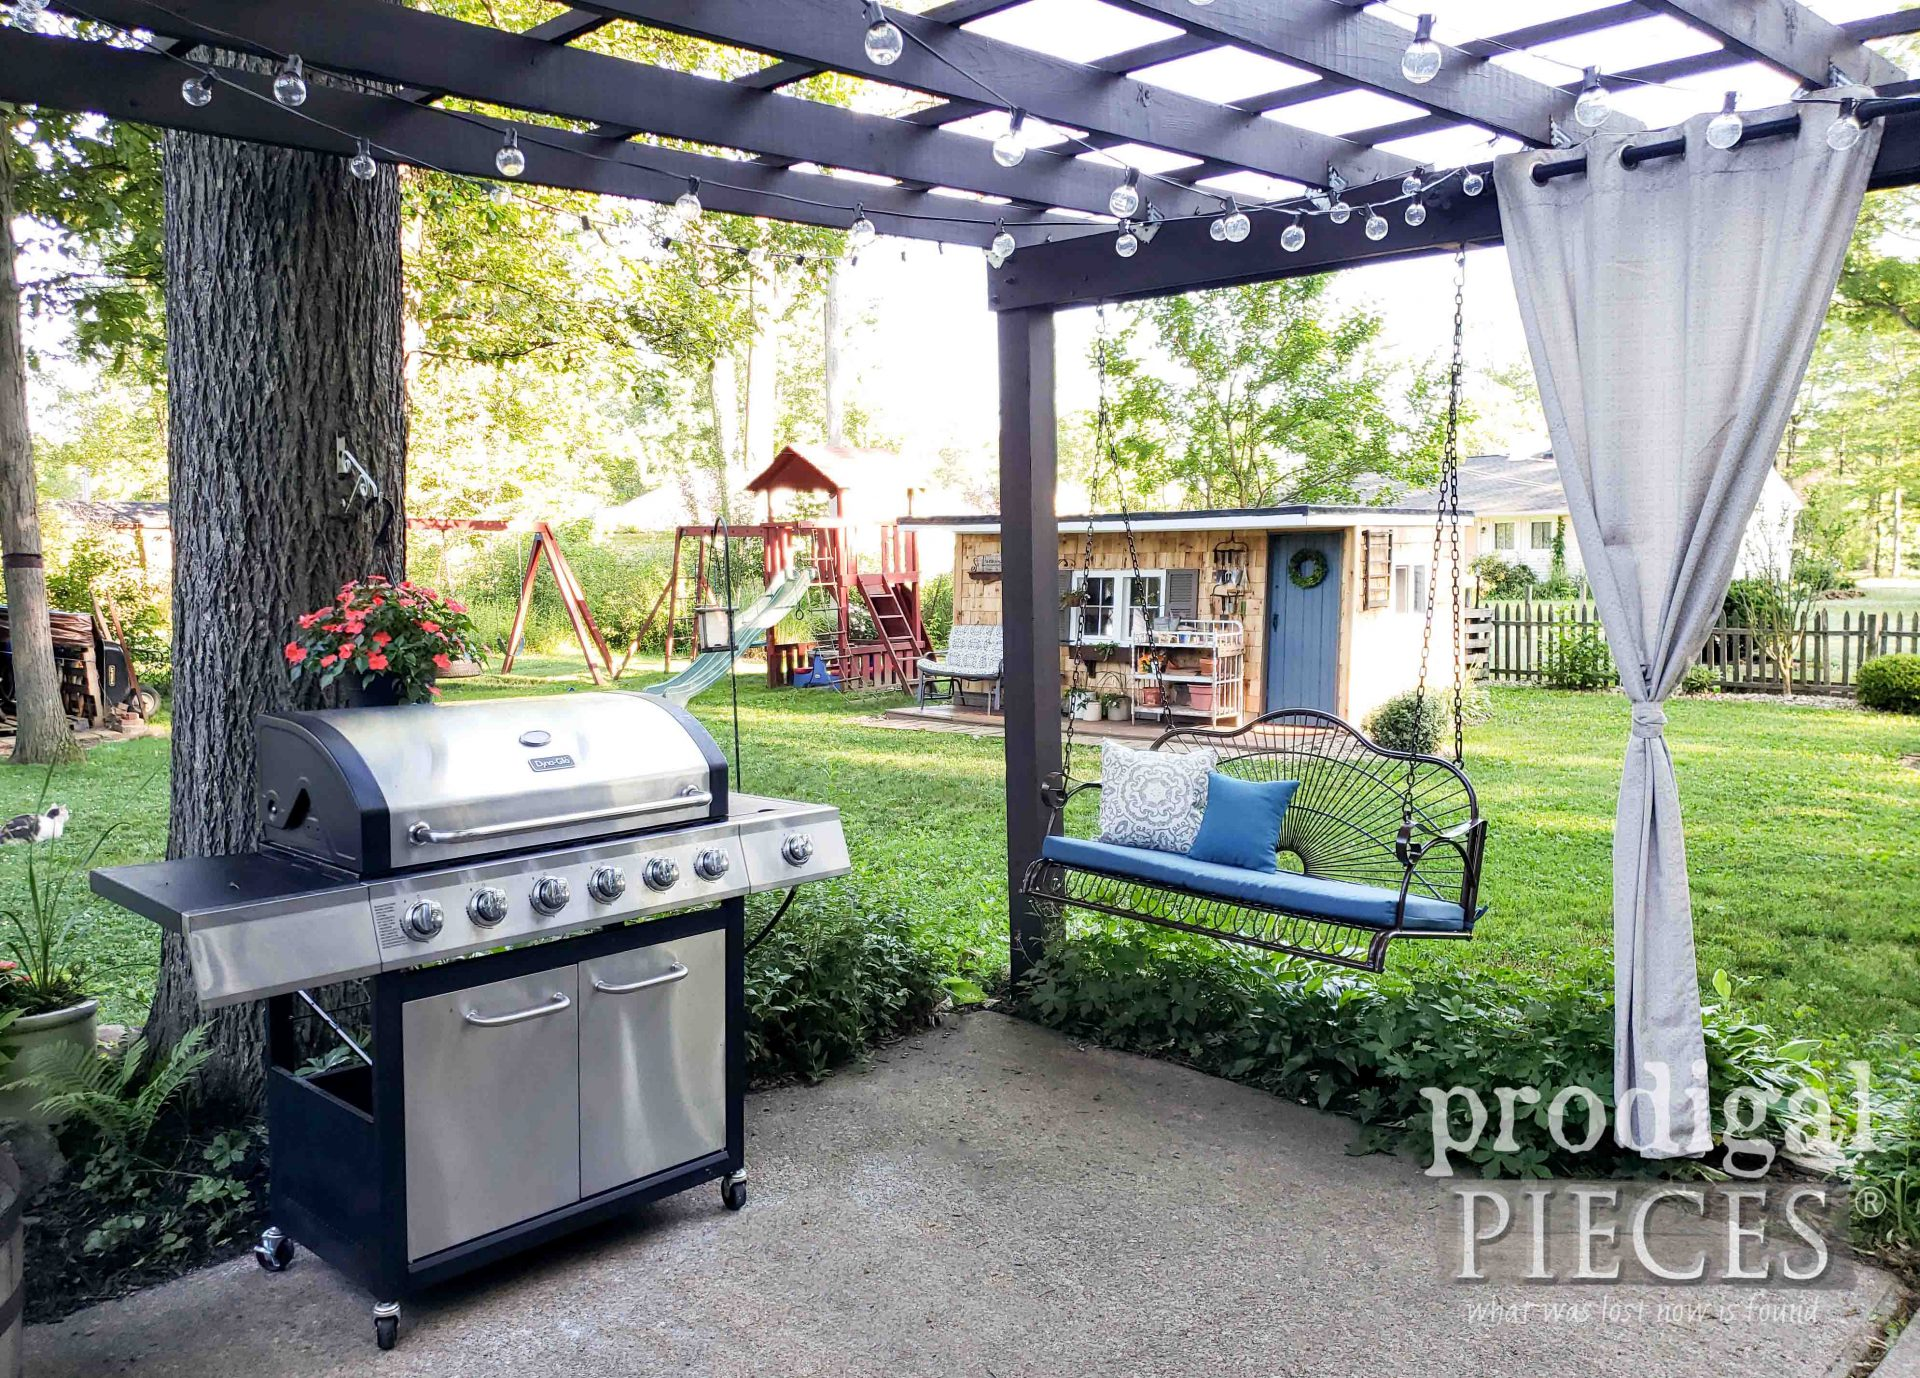 Backyard Patio with DIY Garden Shed by Prodigal Pieces | prodigalpieces.com #prodigalpieces #diy #home #patio #homedecor #backyard